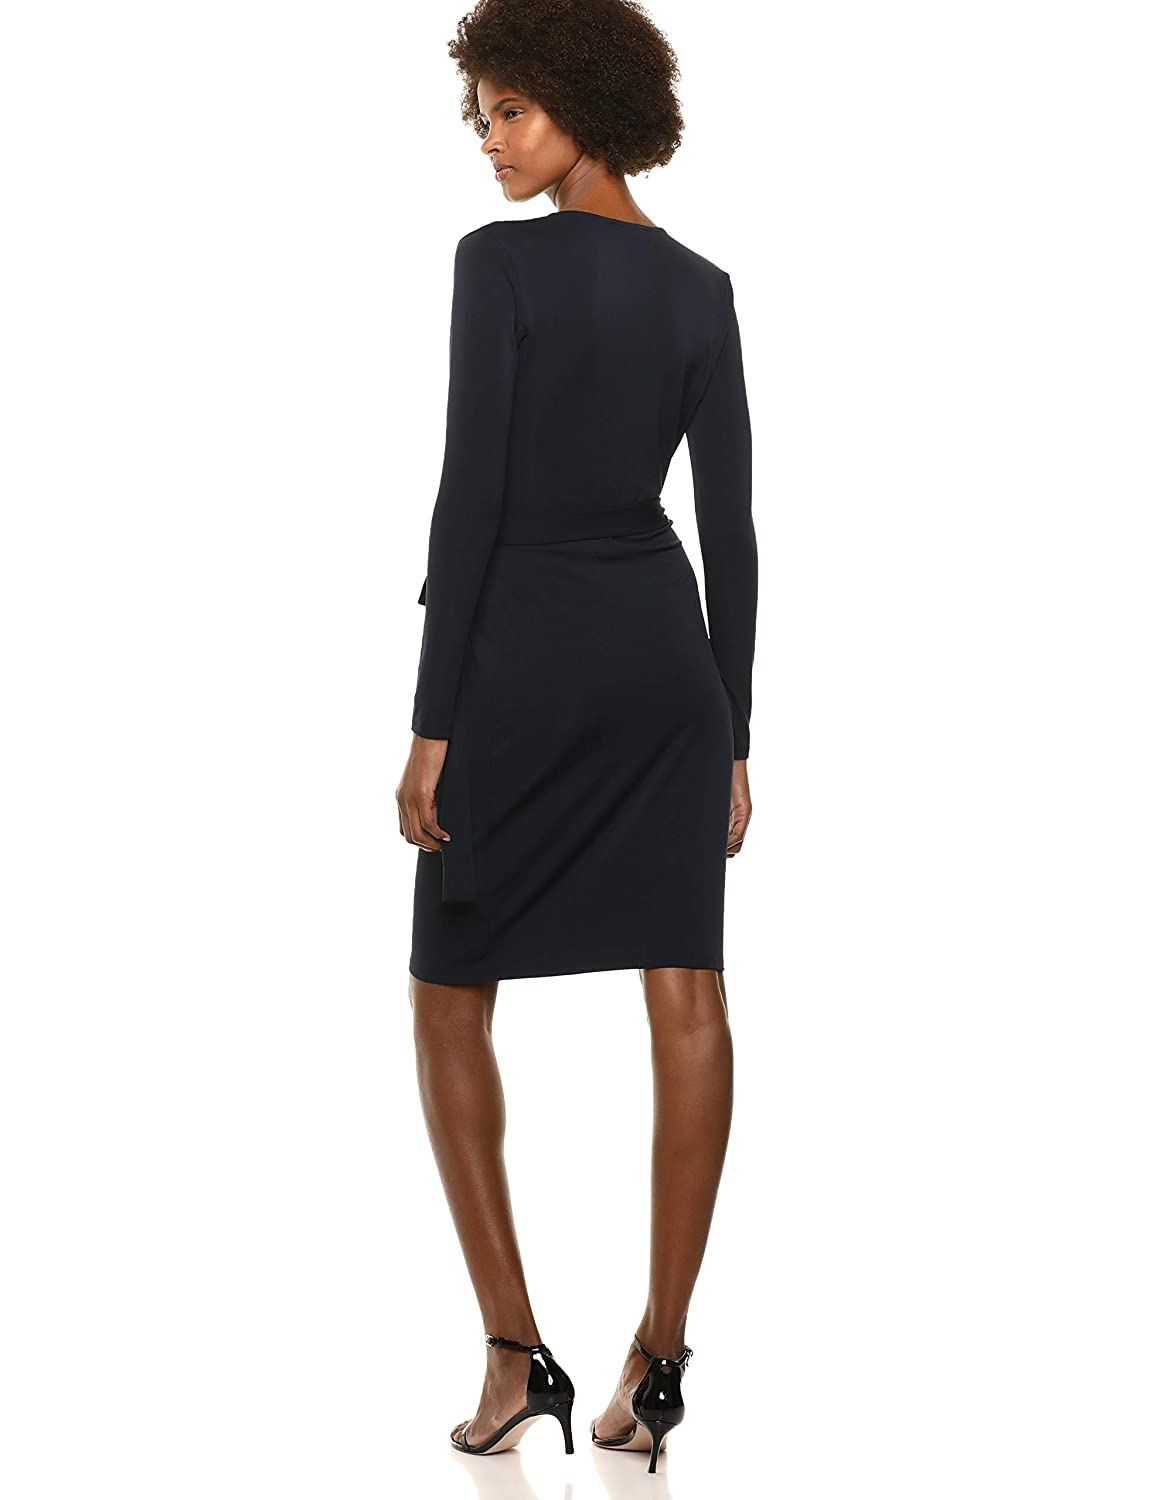 Lark /& Ro  Brand Womens Classic Long Sleeve Wrap Dress